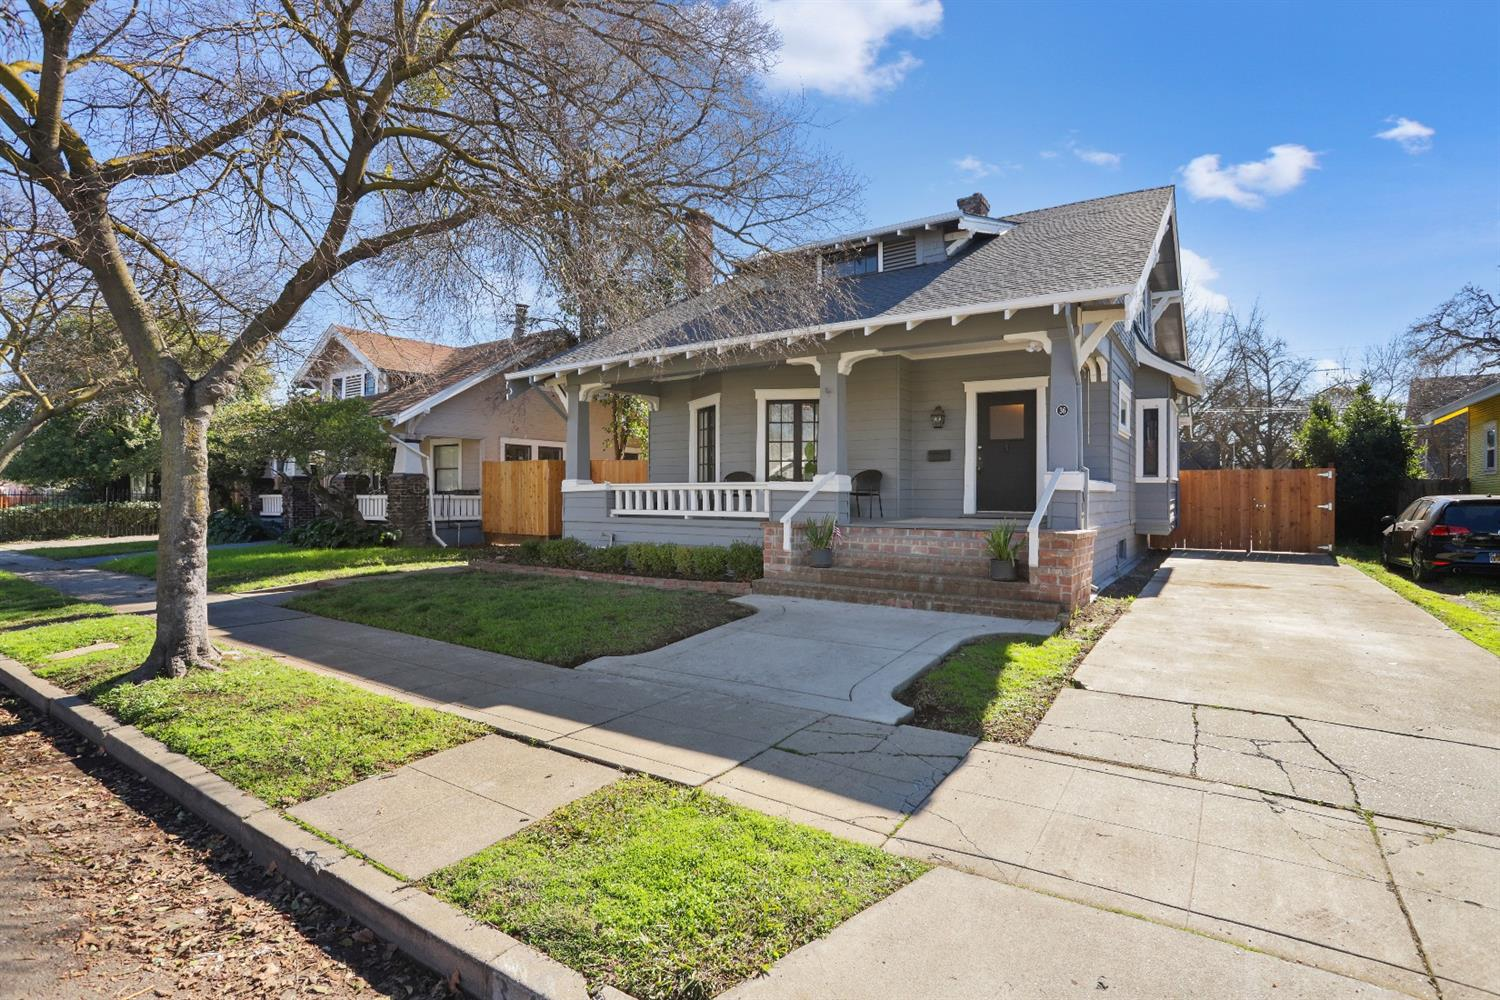 Photo of 36 W Walnut Street, Stockton, CA 95204